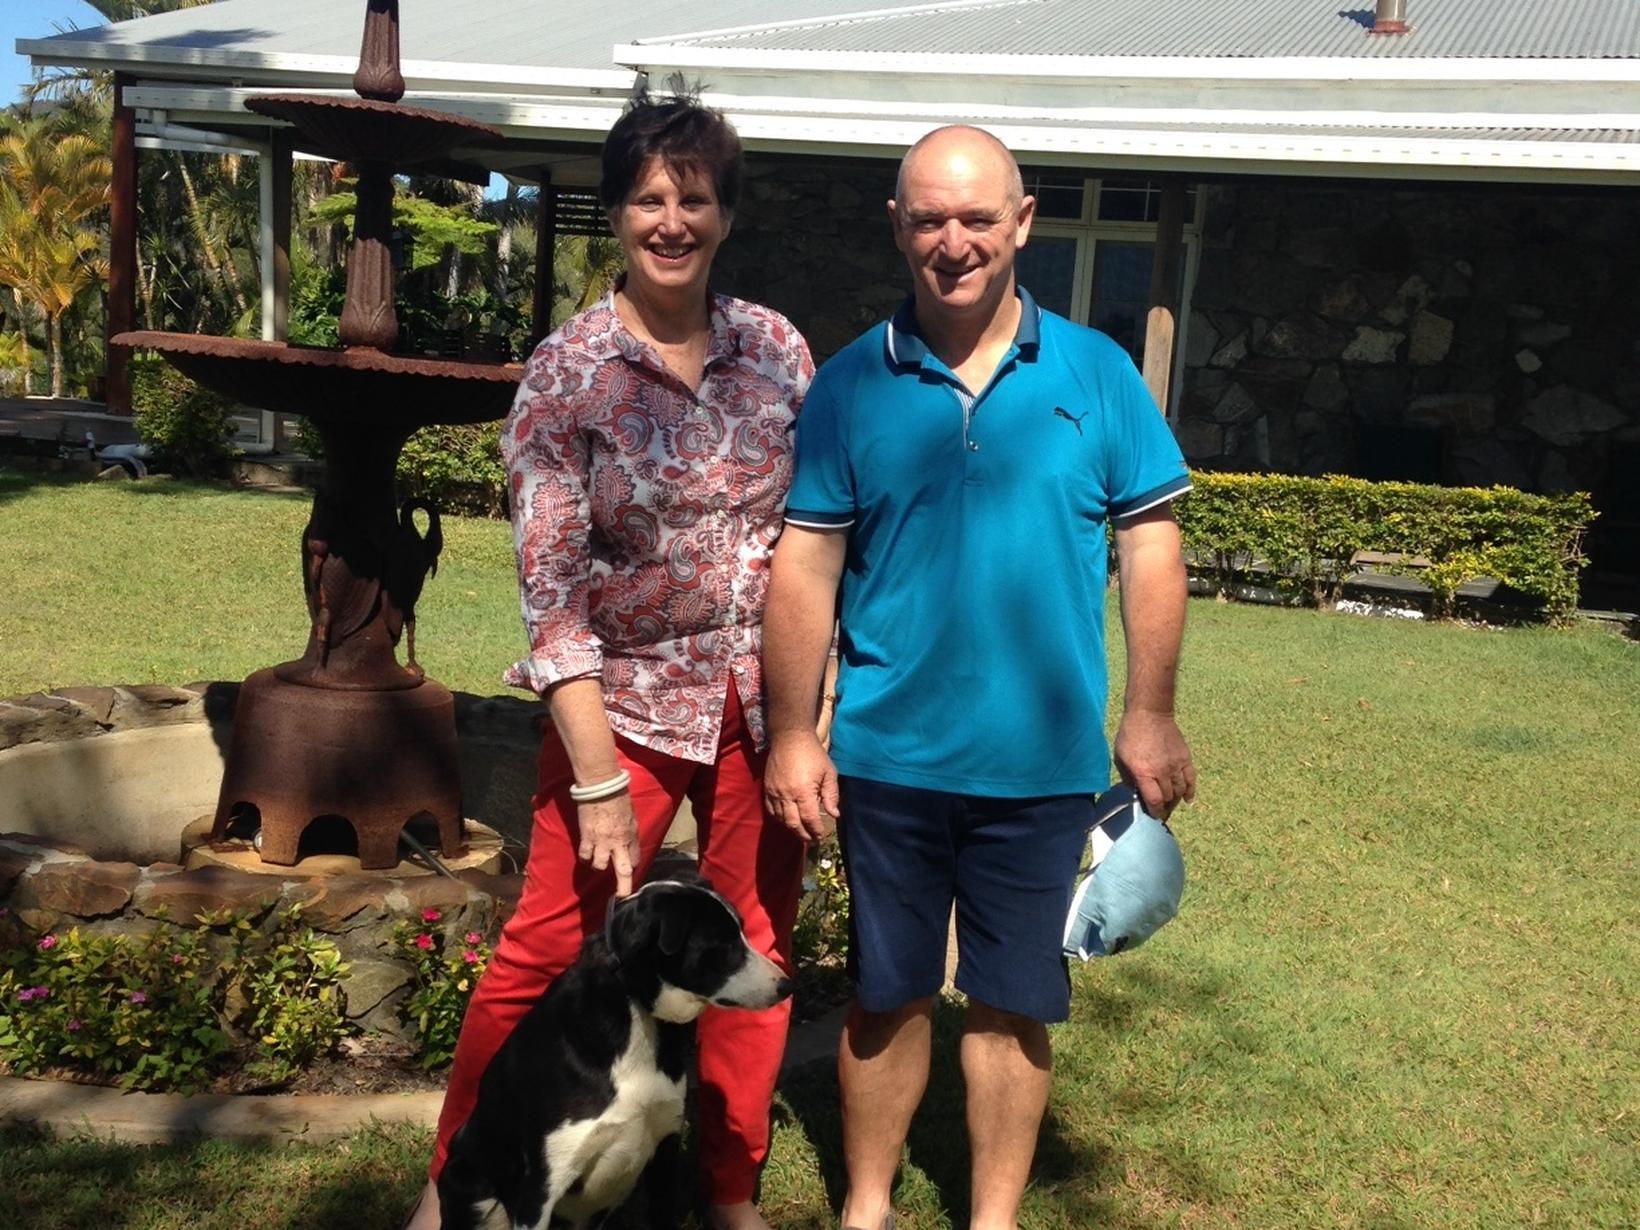 Peter & Sharon from Willow Vale, Queensland, Australia